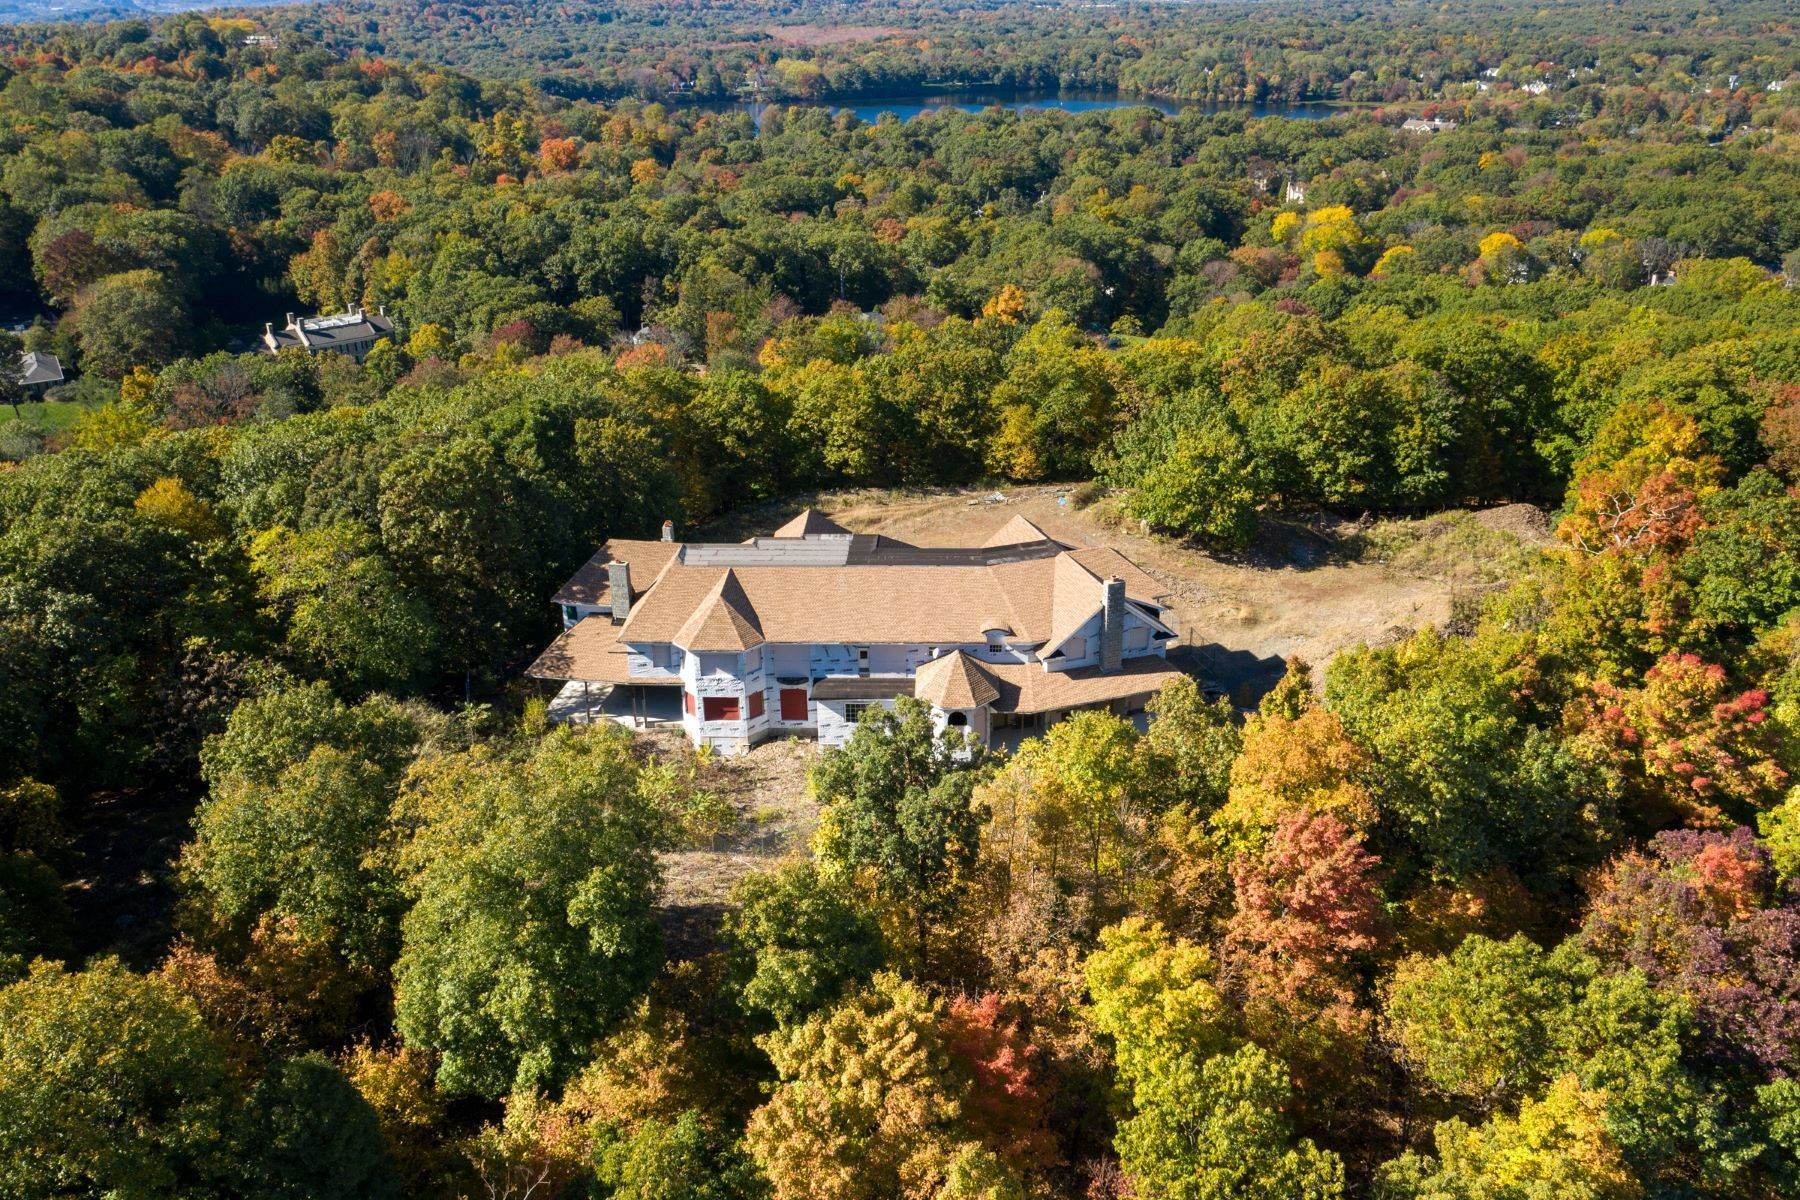 Single Family Homes for Sale at Stunning Views on the Mountain 642/650 Pawnee Lane Franklin Lakes, New Jersey 07417 United States